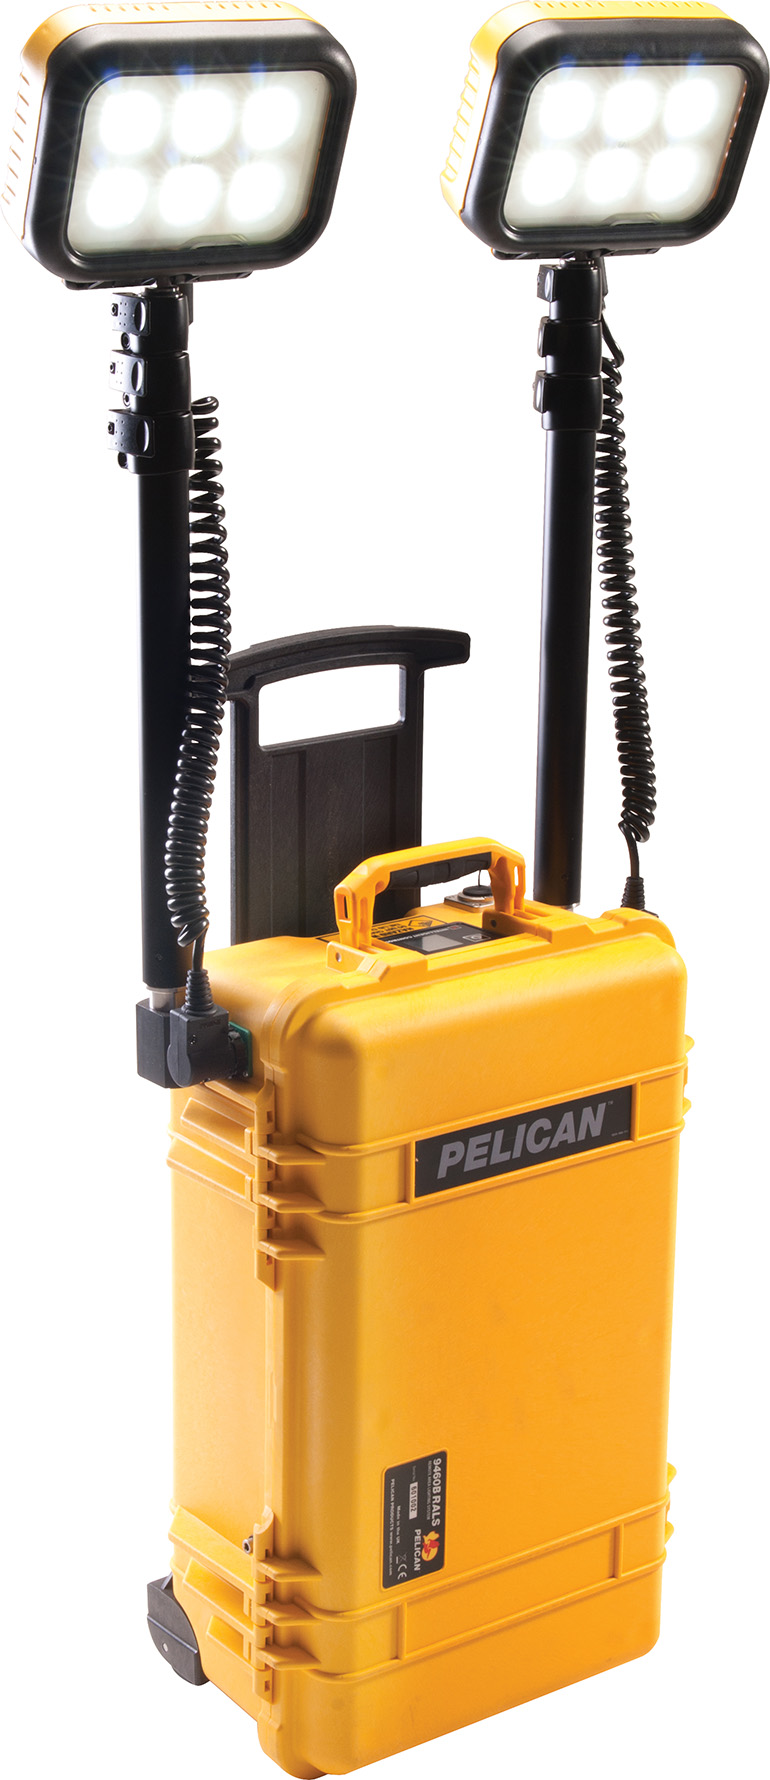 pelican-9460-remote-area-light